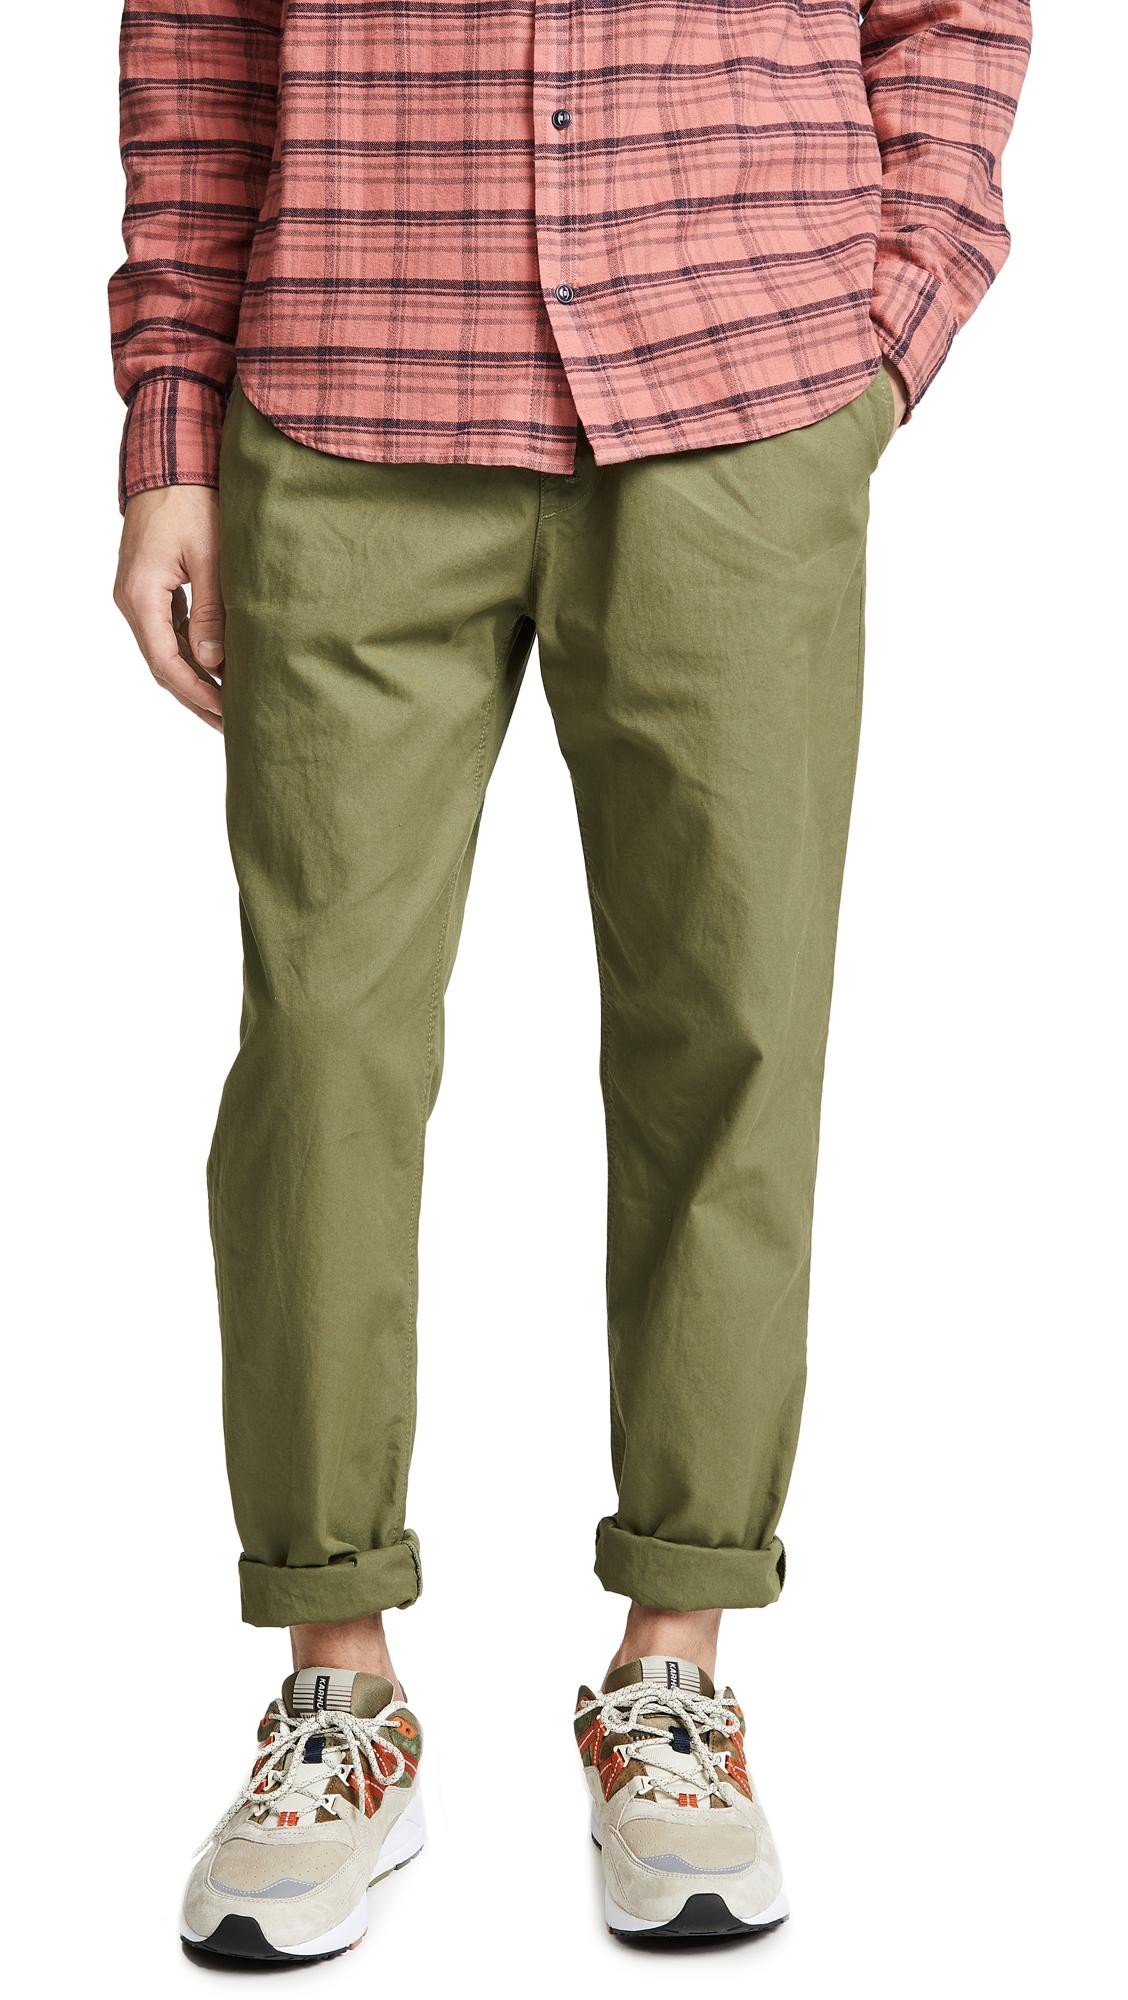 fast delivery soft and light offer discounts Light Twill Easy Chino Pants in Olive Drab